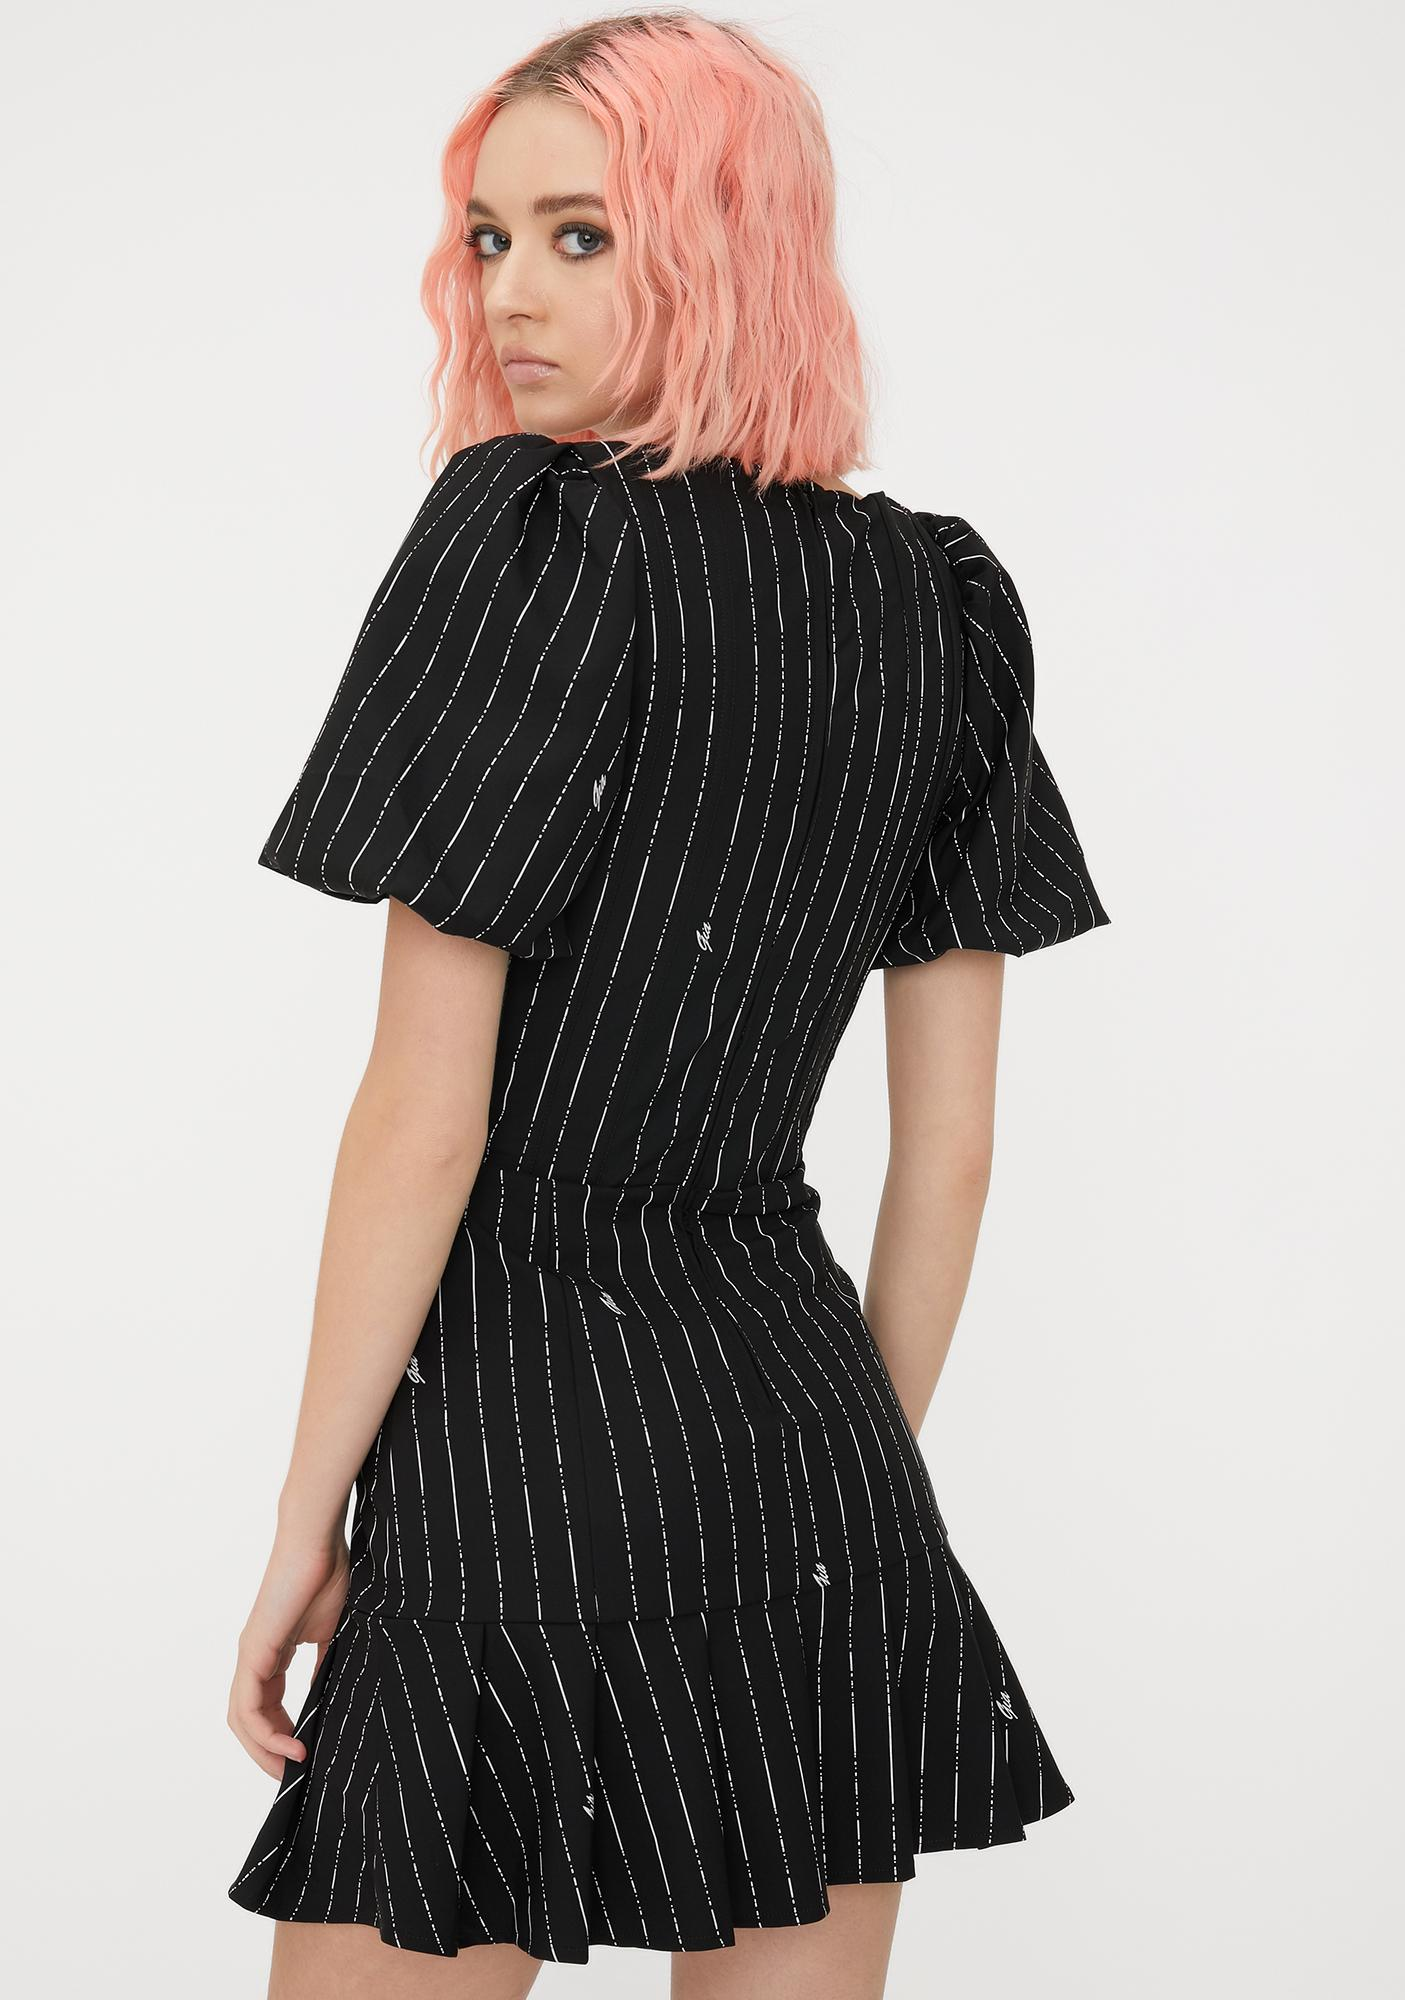 I AM GIA Pinstripe Chelsey Mini Dress